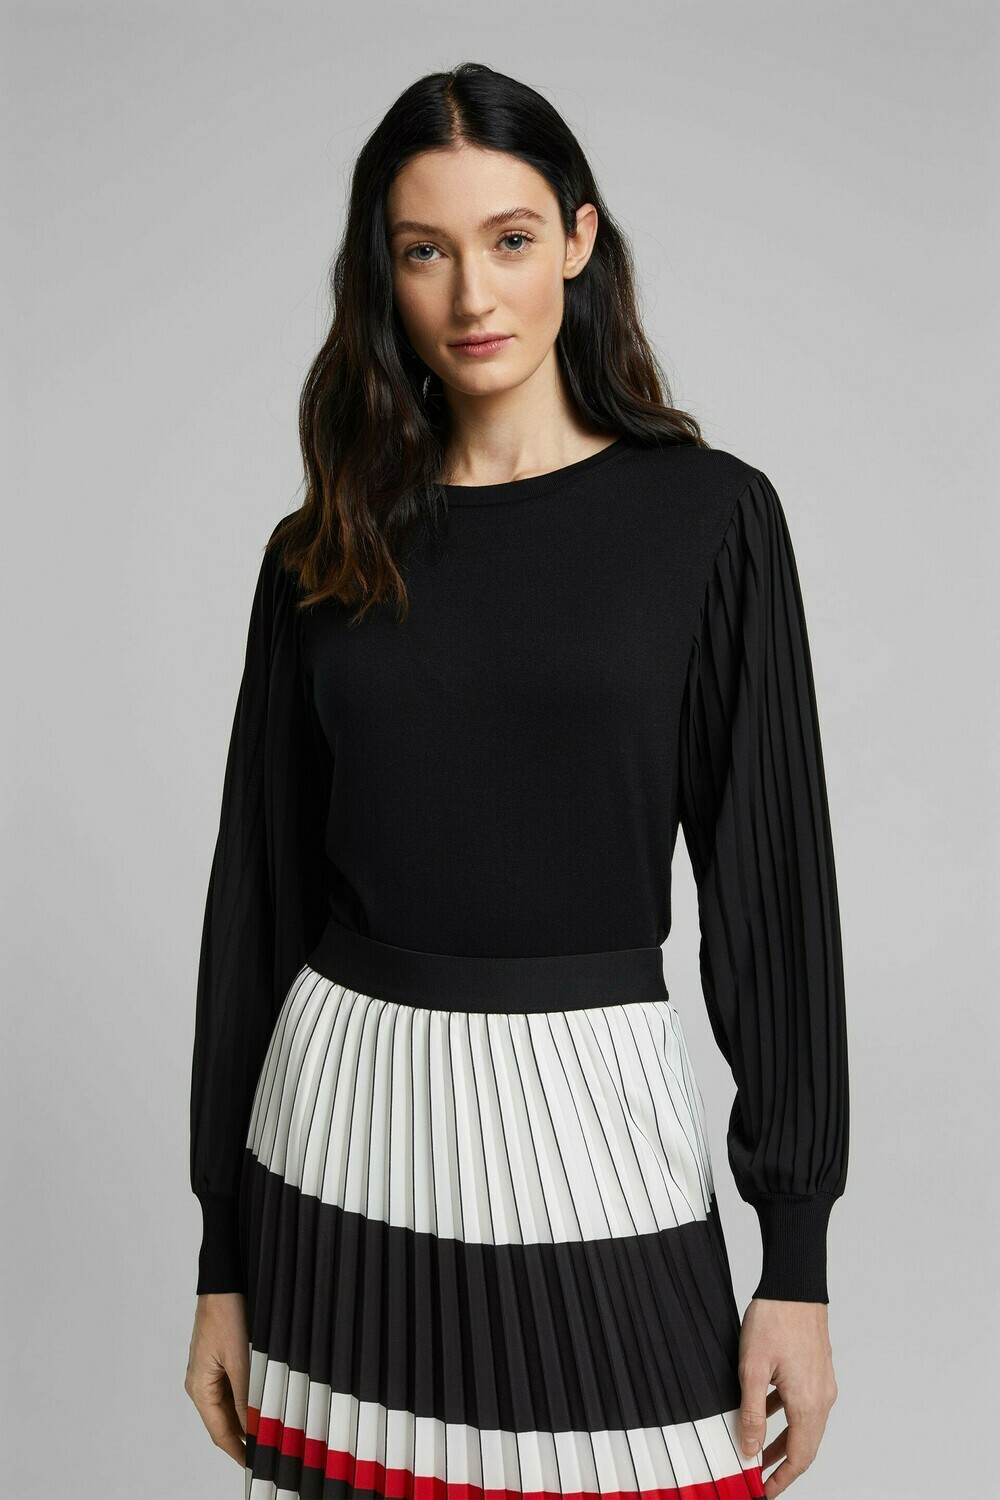 Black top with Sheer, Pleated Sleeve Detail